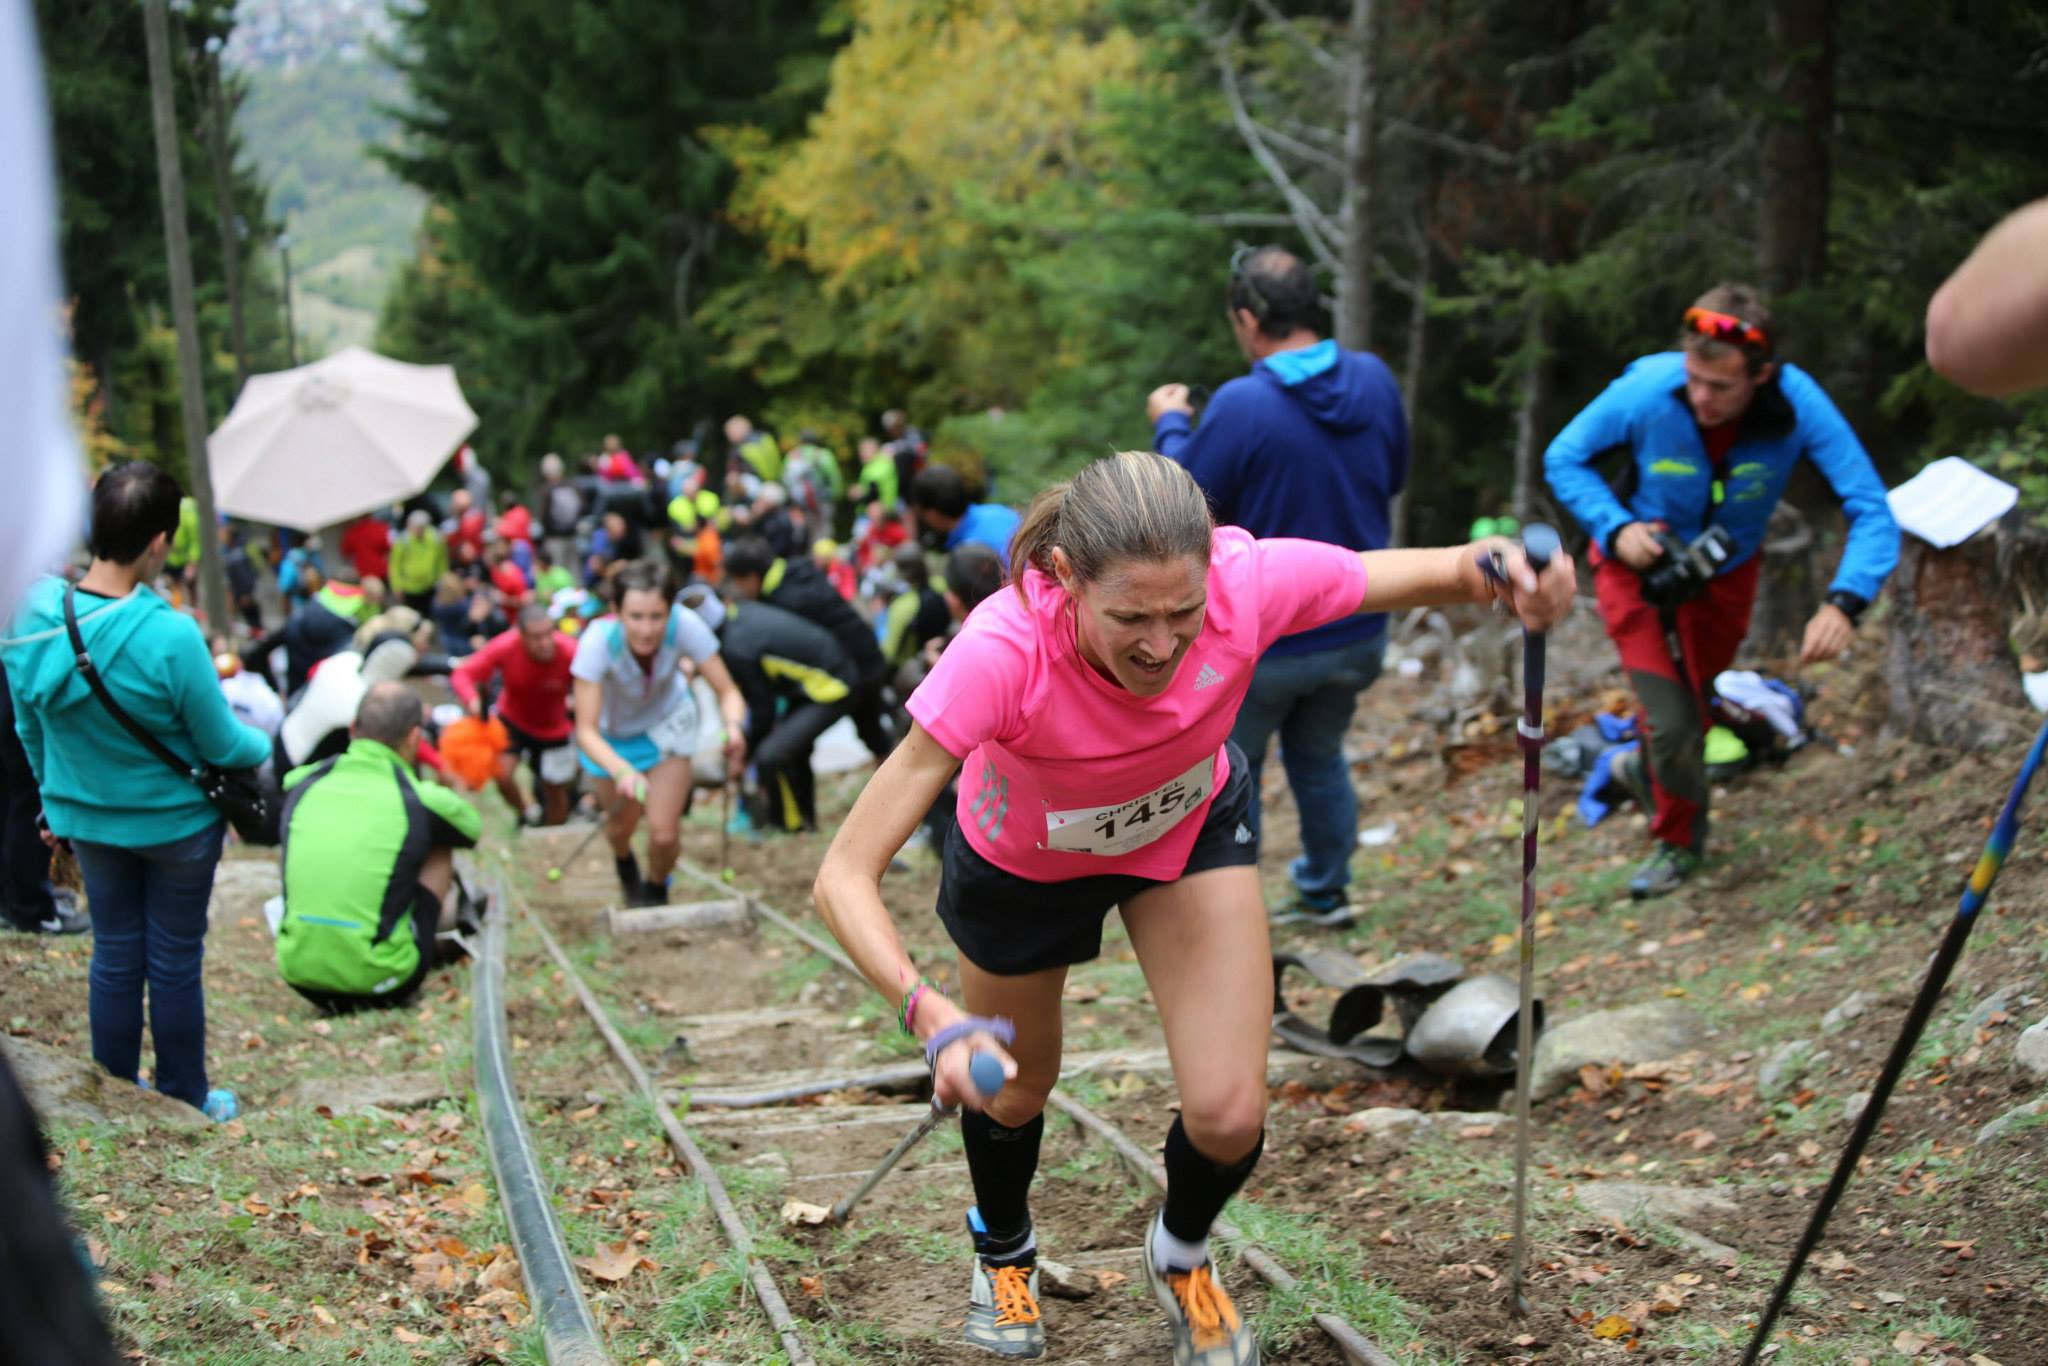 10703838 10152816642299176 953502247800791224 o - PHOTOS DES ATHLETES FEMININES SUR LE KM VERTICAL DE FULLY (SUISSE) / 25-10-14